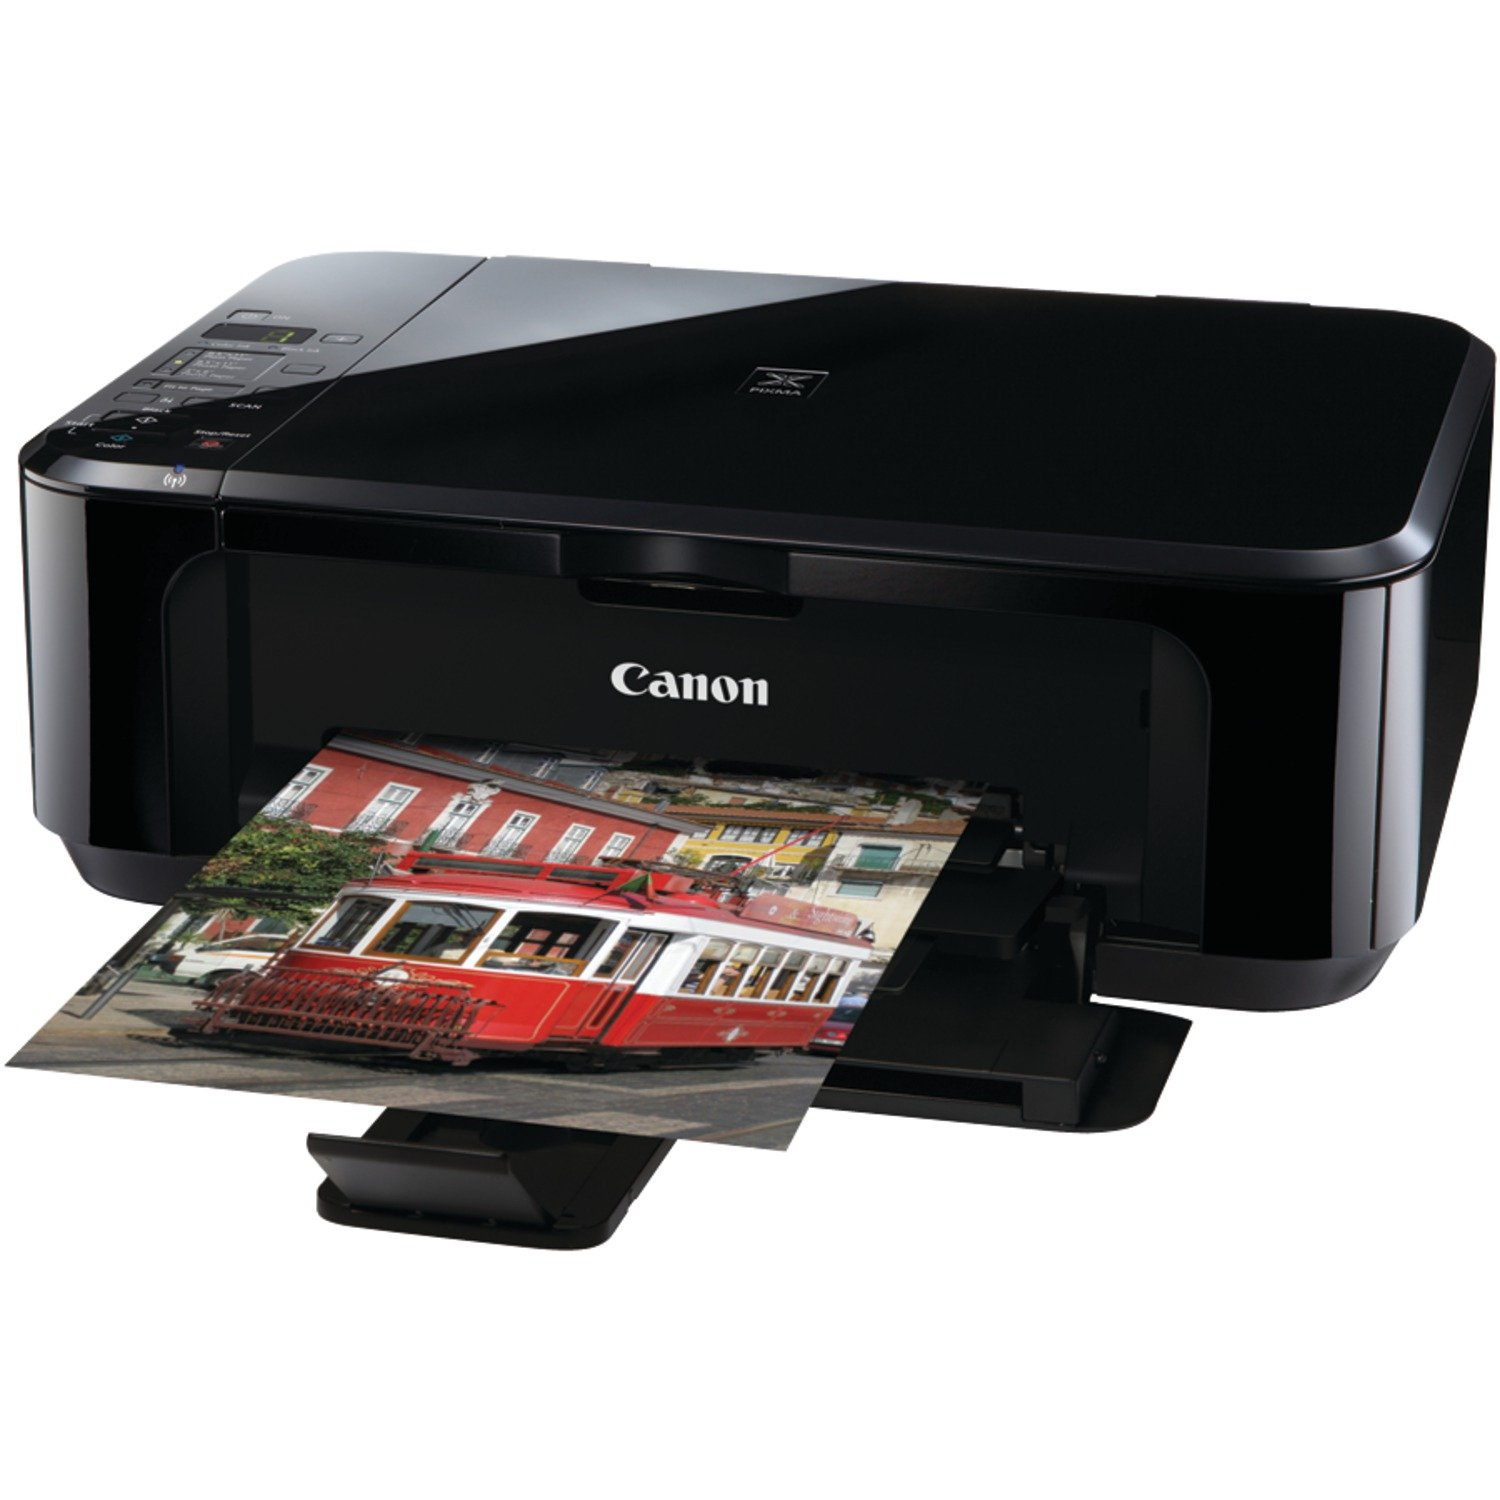 Amazon.com: Canon PIXMA MG3120 Wireless Inkjet Photo All-In-One (5289B019):  Electronics